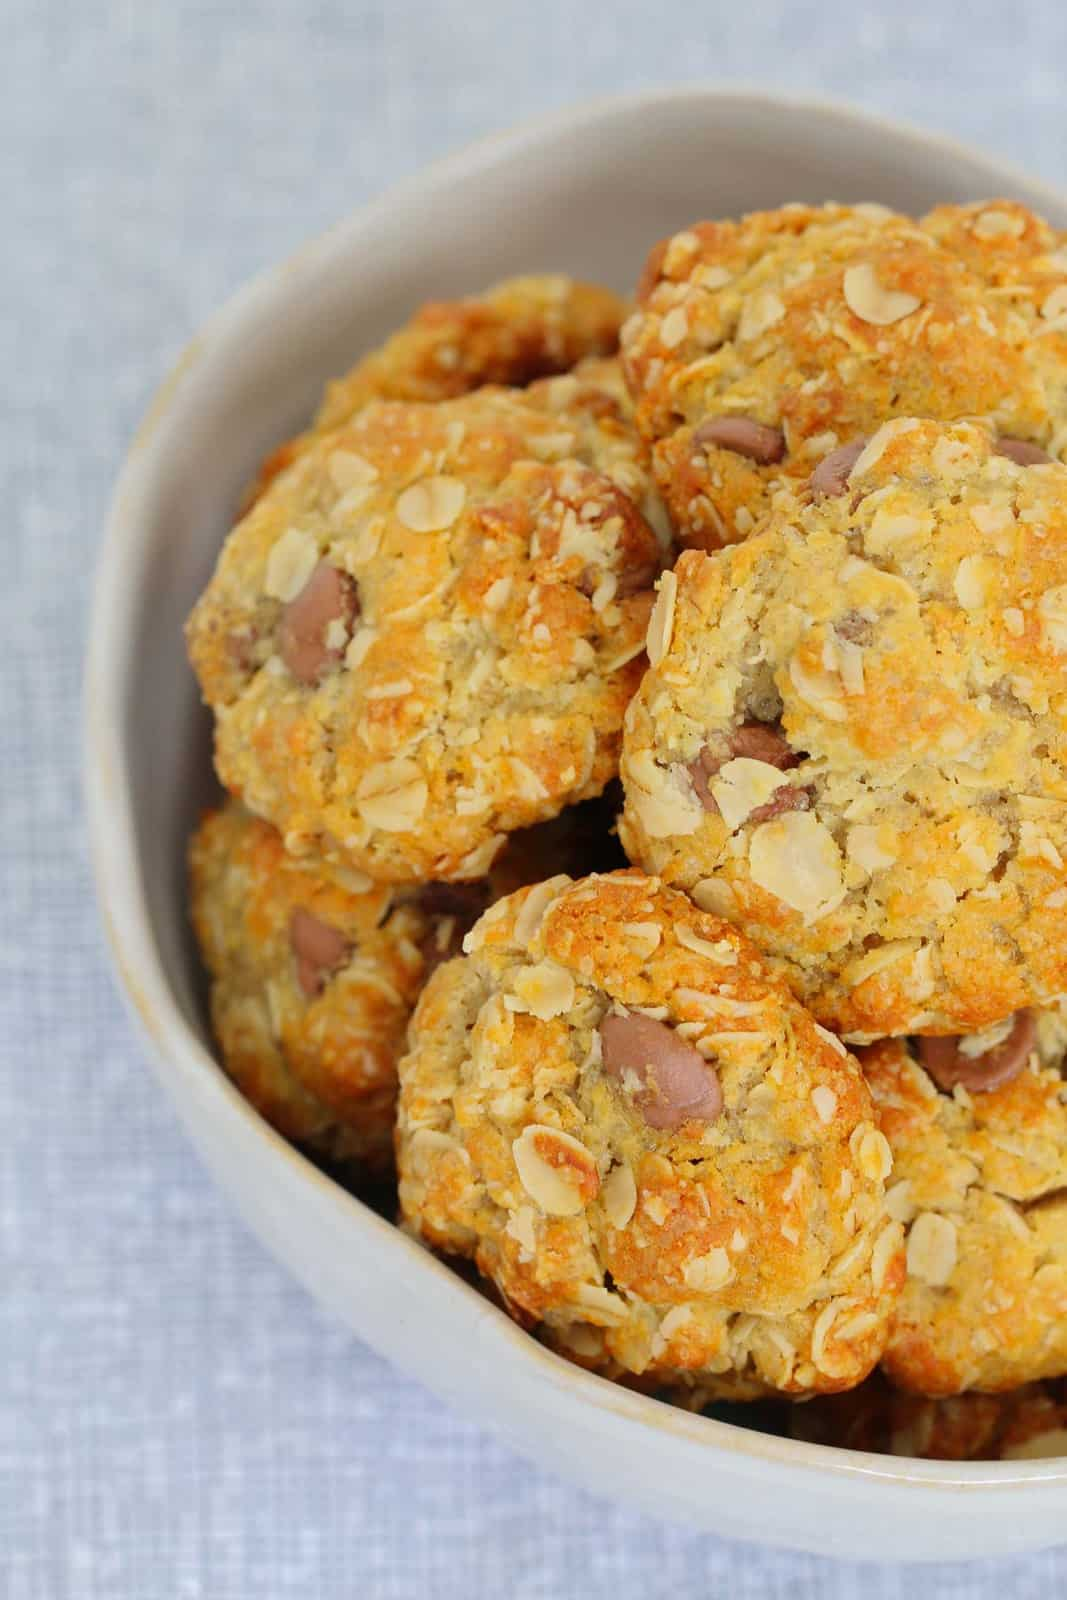 A bowl filled with golden baked oat biscuits made with chocolate chips.